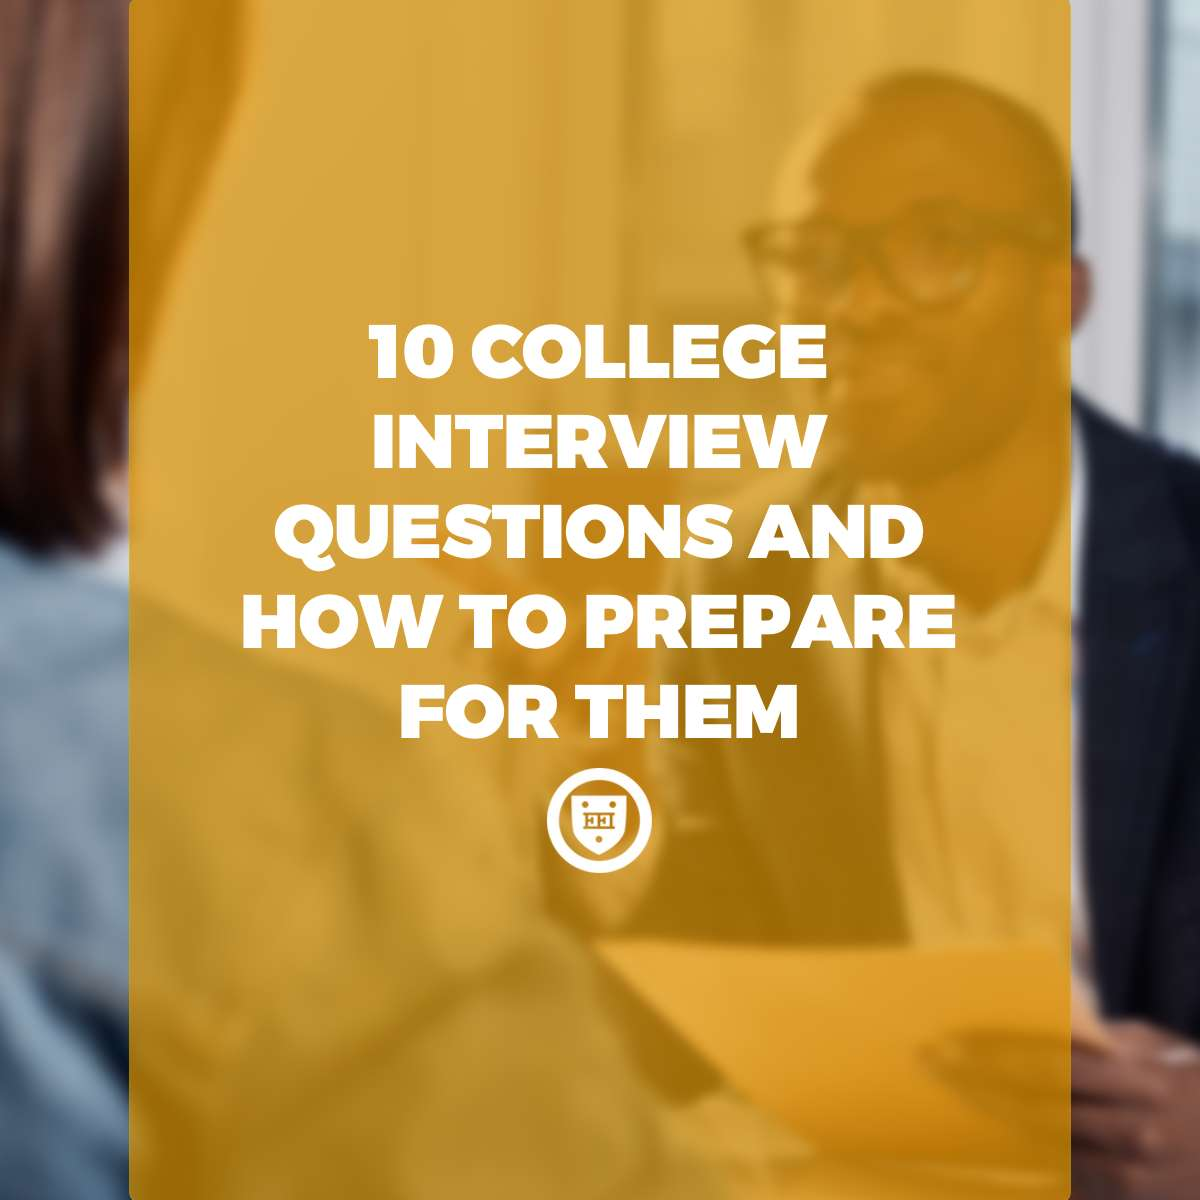 10 College Interview Questions and How to Prepare for Them